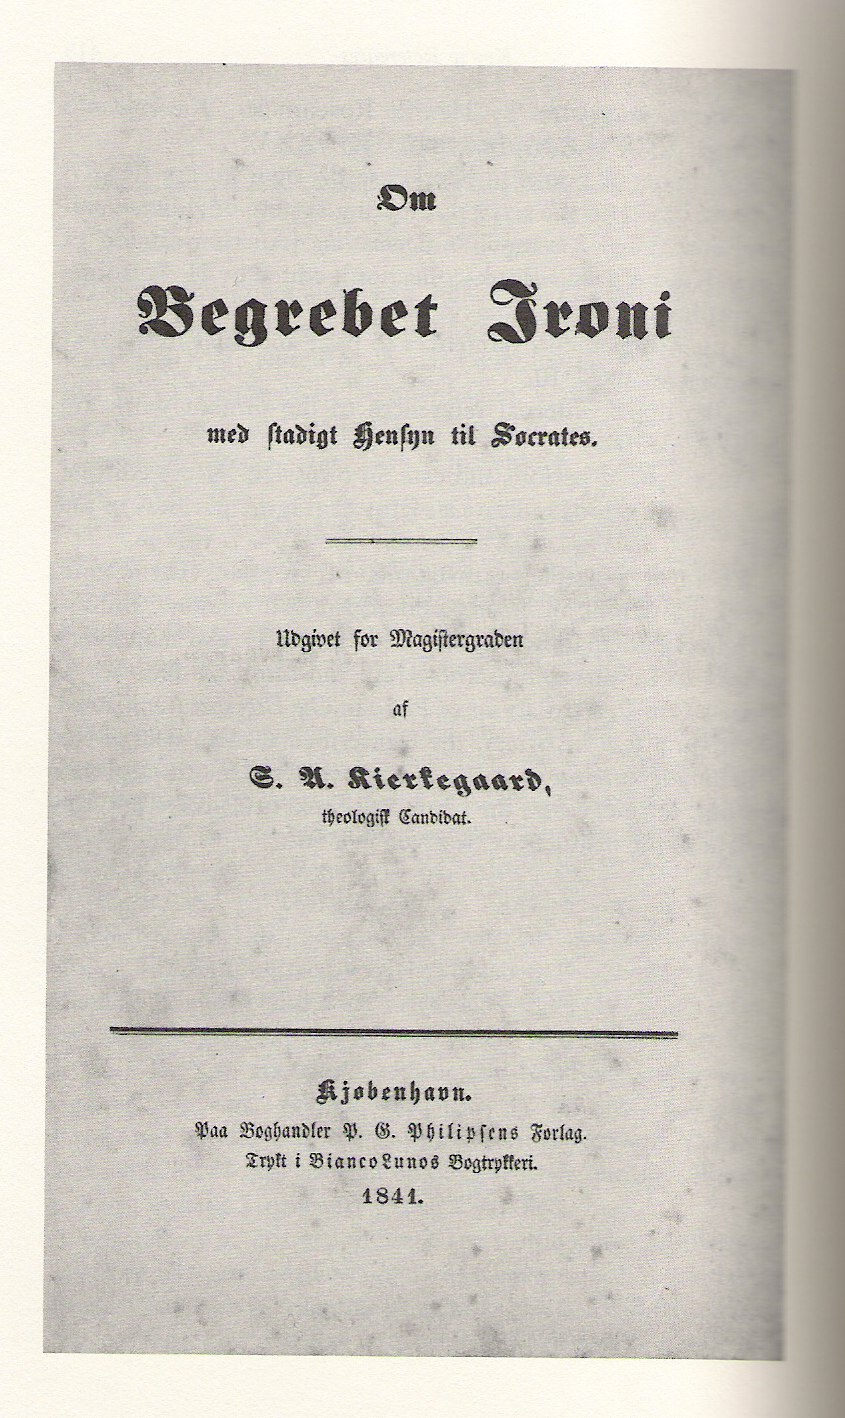 thesis cover page to soslashren kierkegaard s university thesis 1841